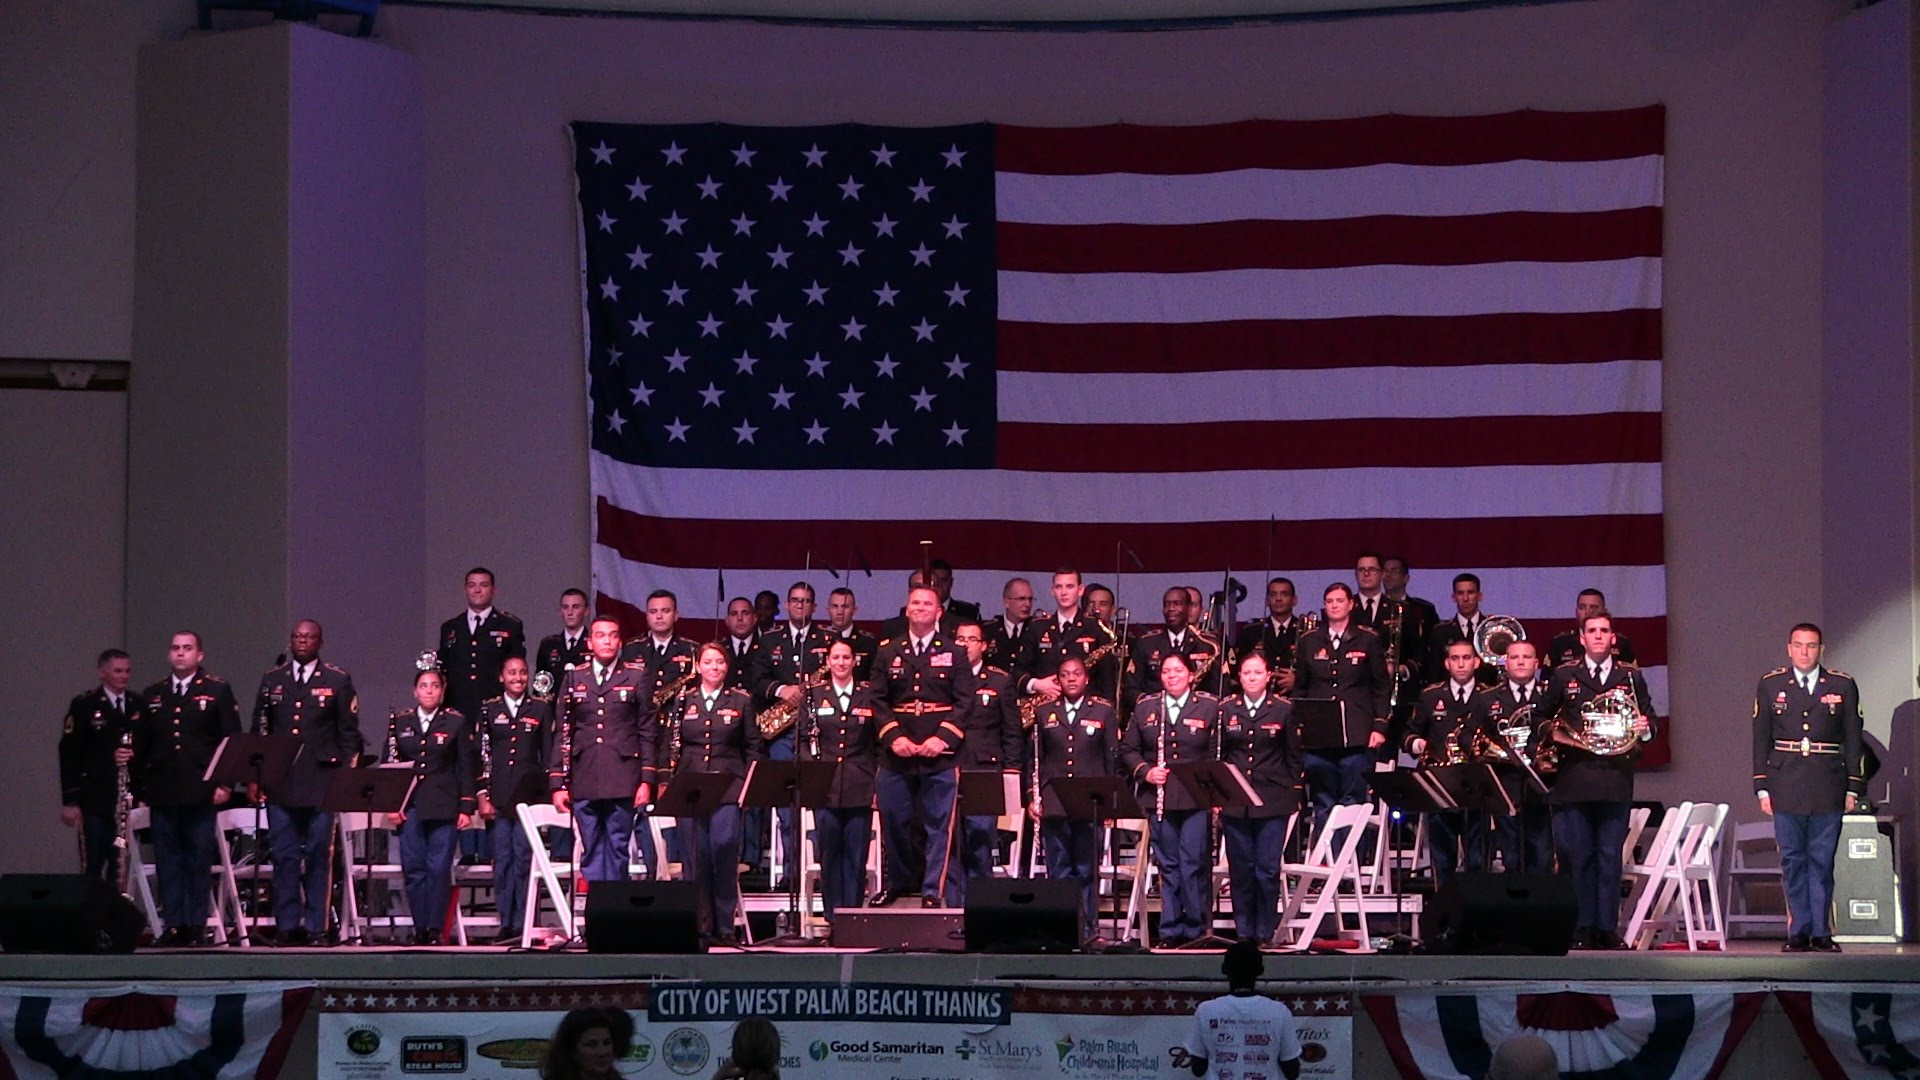 Free July 4th events in West Palm Beach and Ft. Pierce 2017